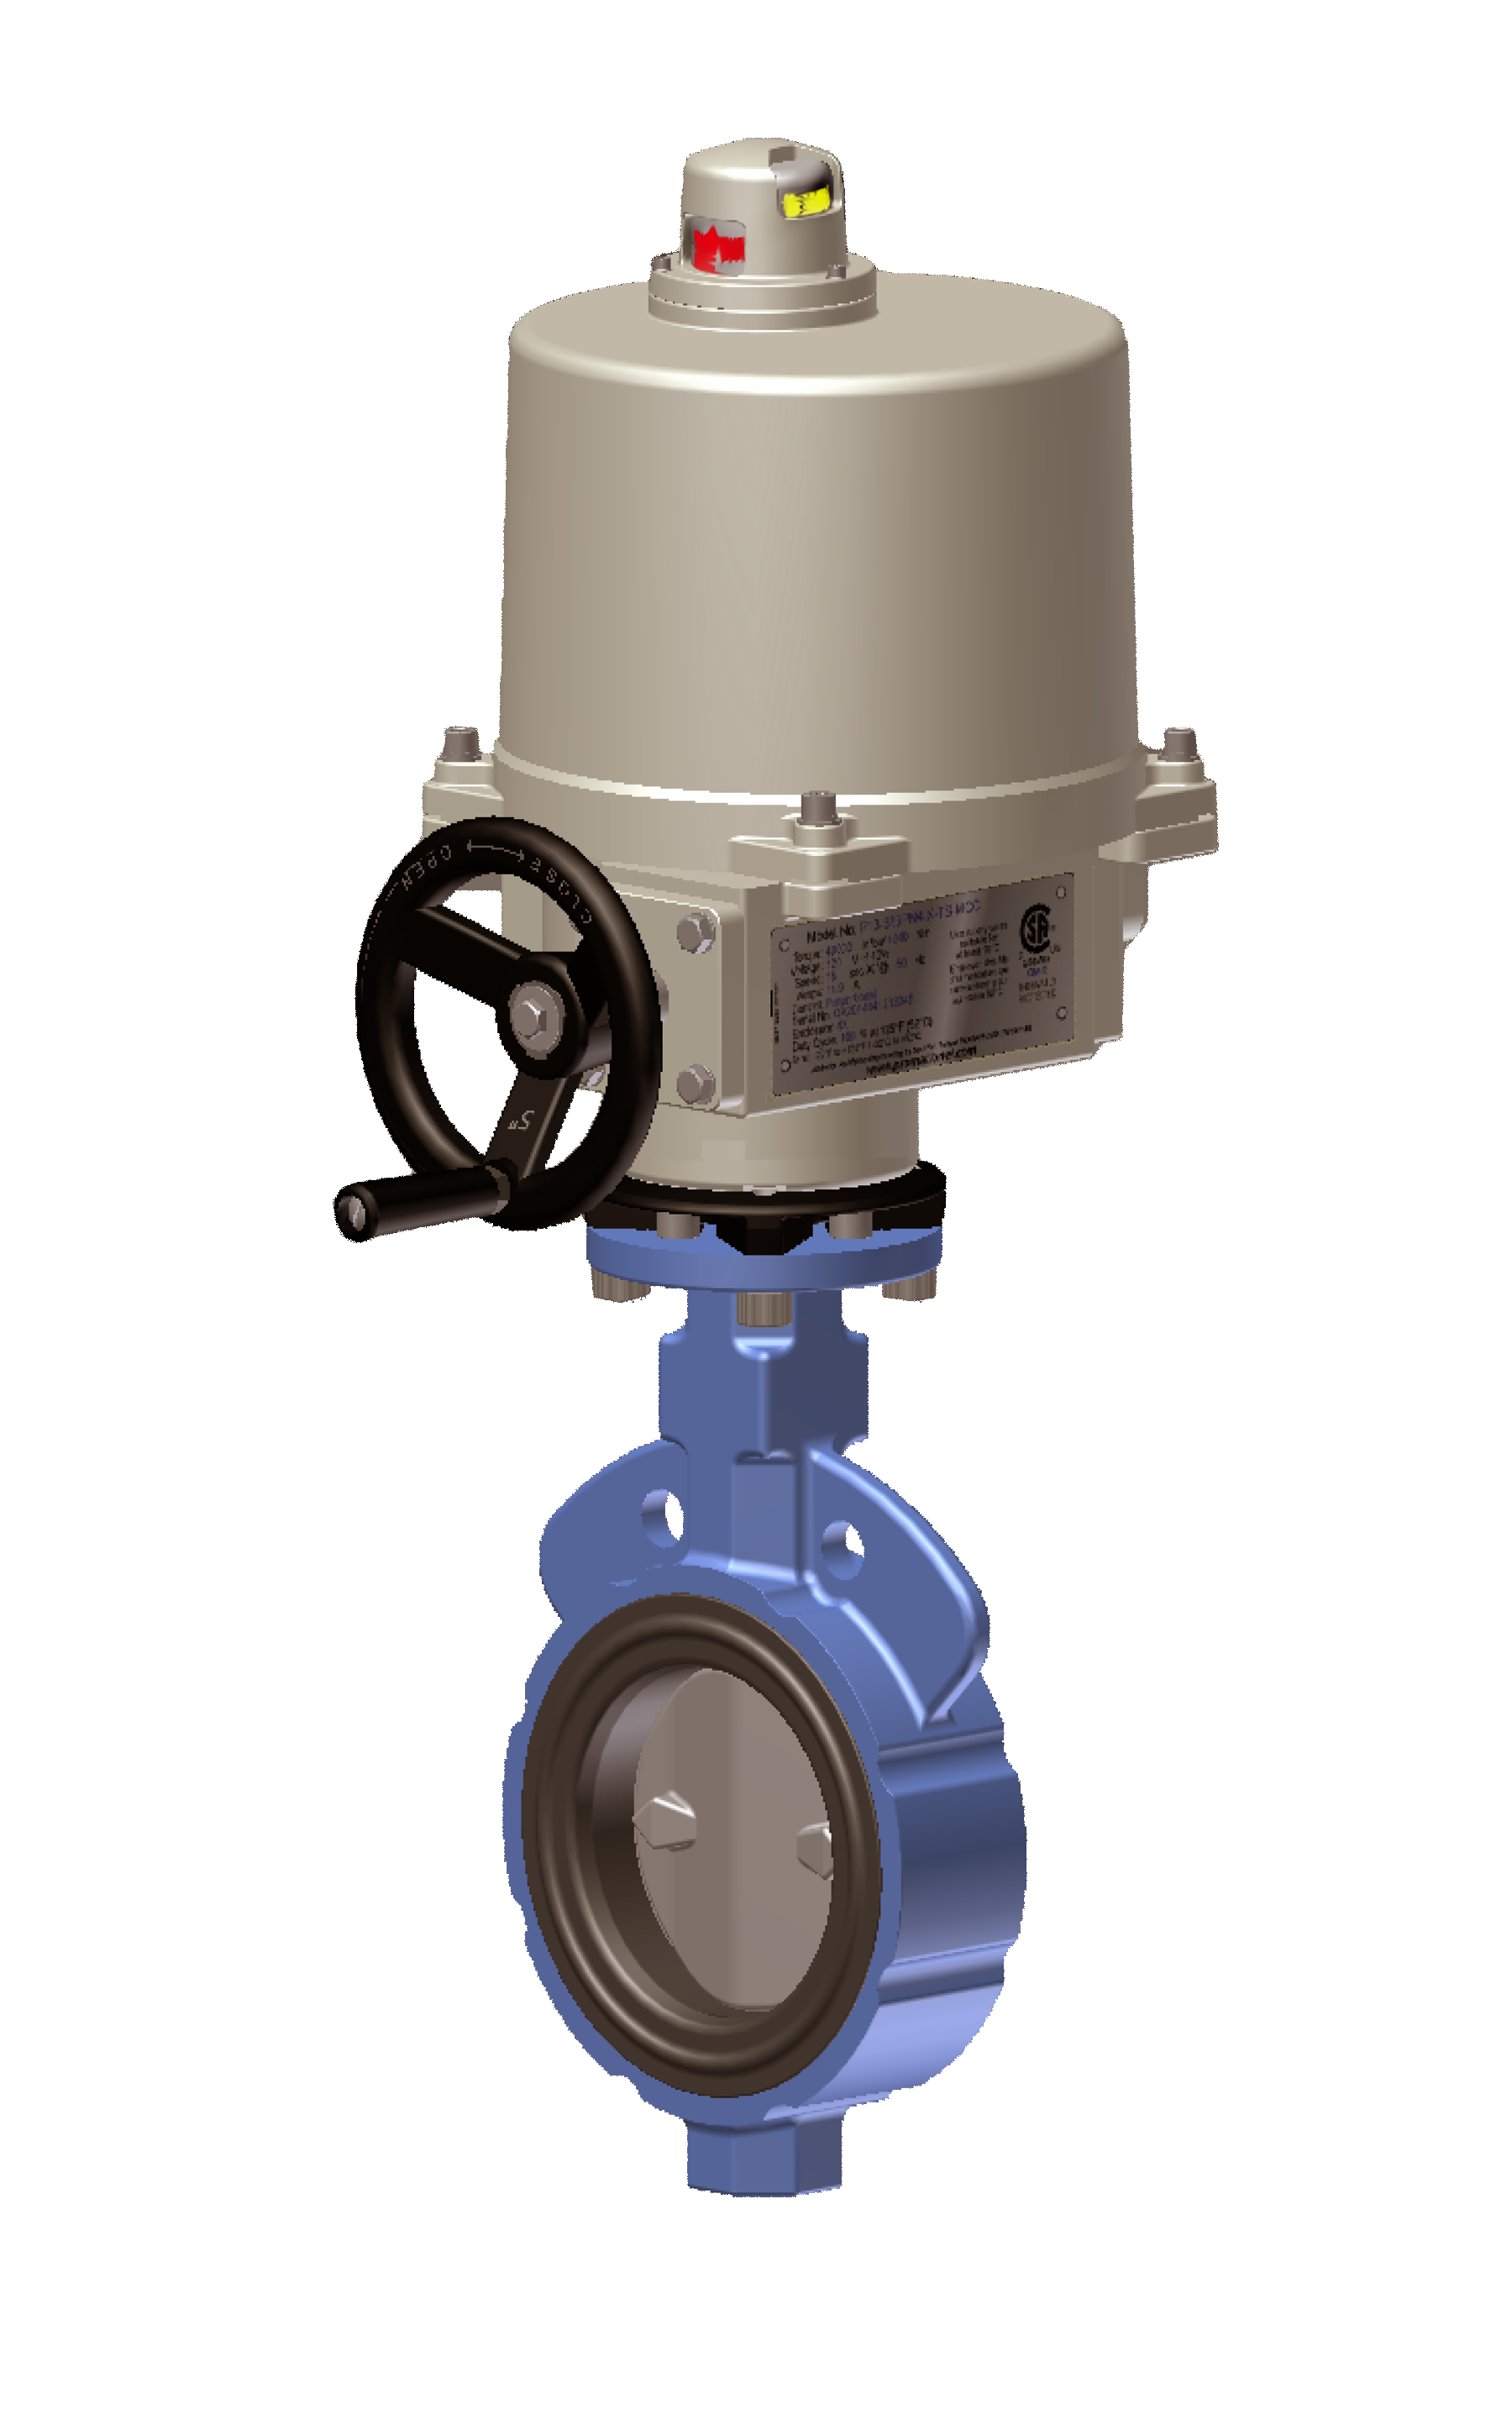 ProMation Engineering Expands Its Valve Mounting Options